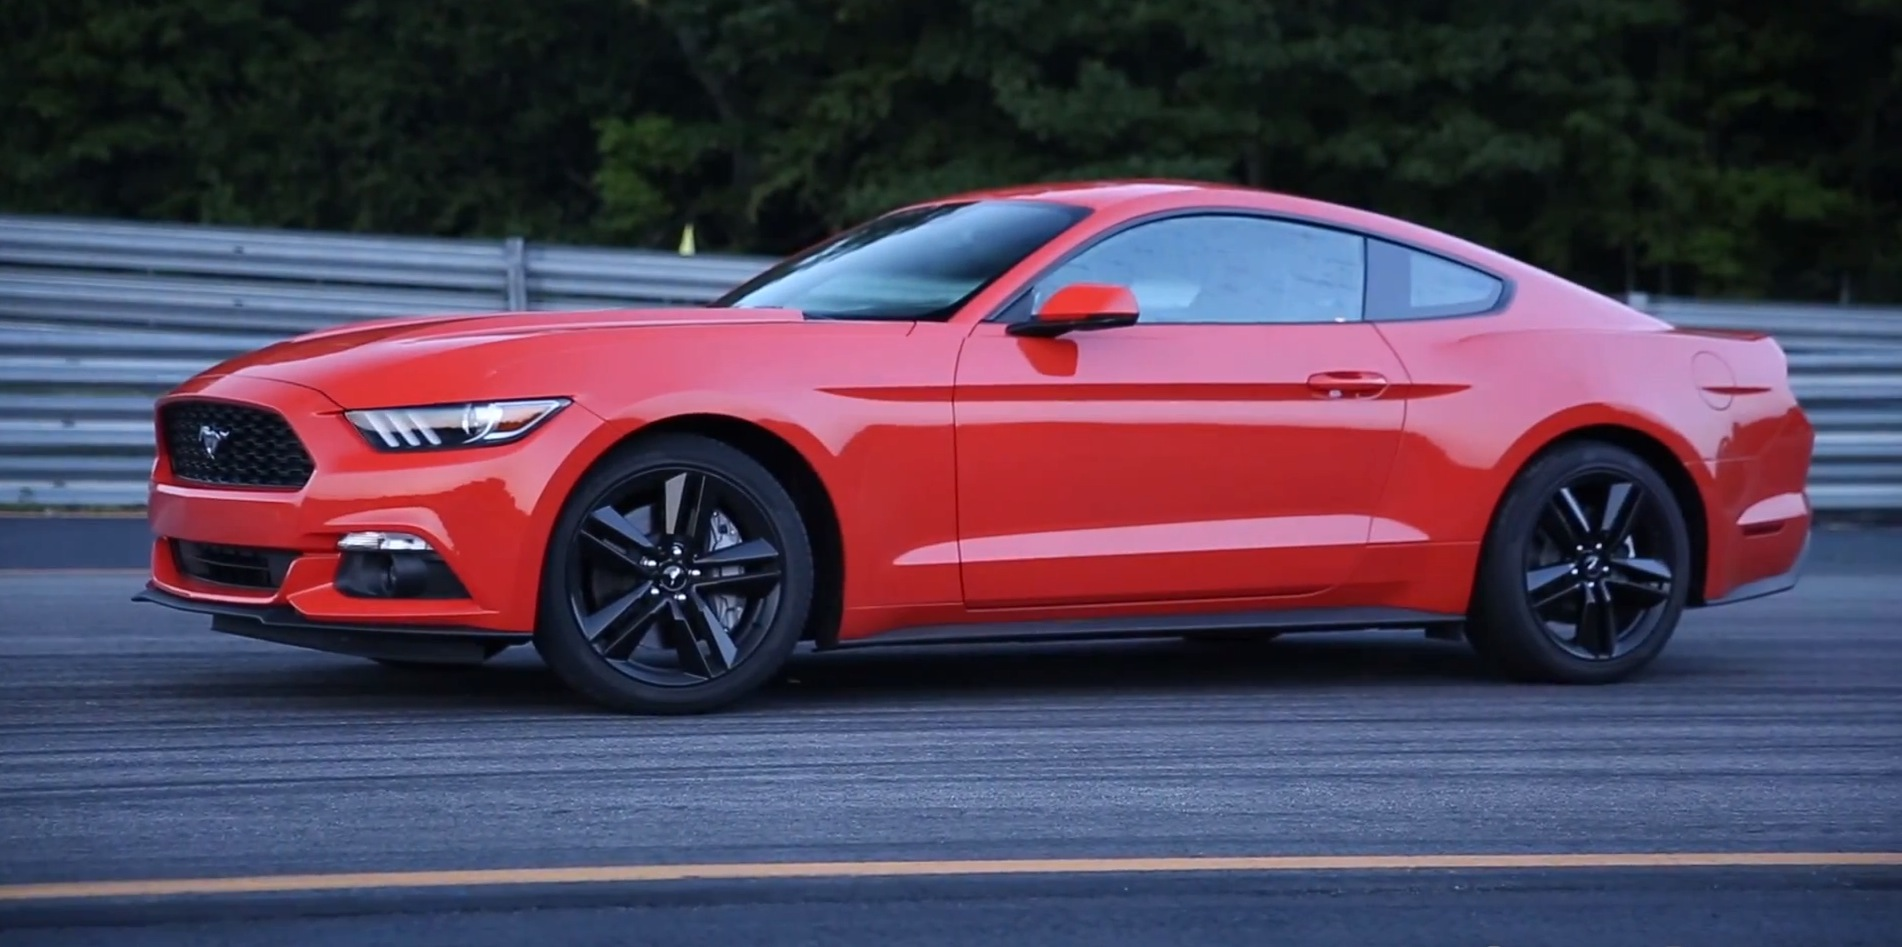 2015 Ford Mustang 2 3l Turbo Ecoboost Gets Positive Review